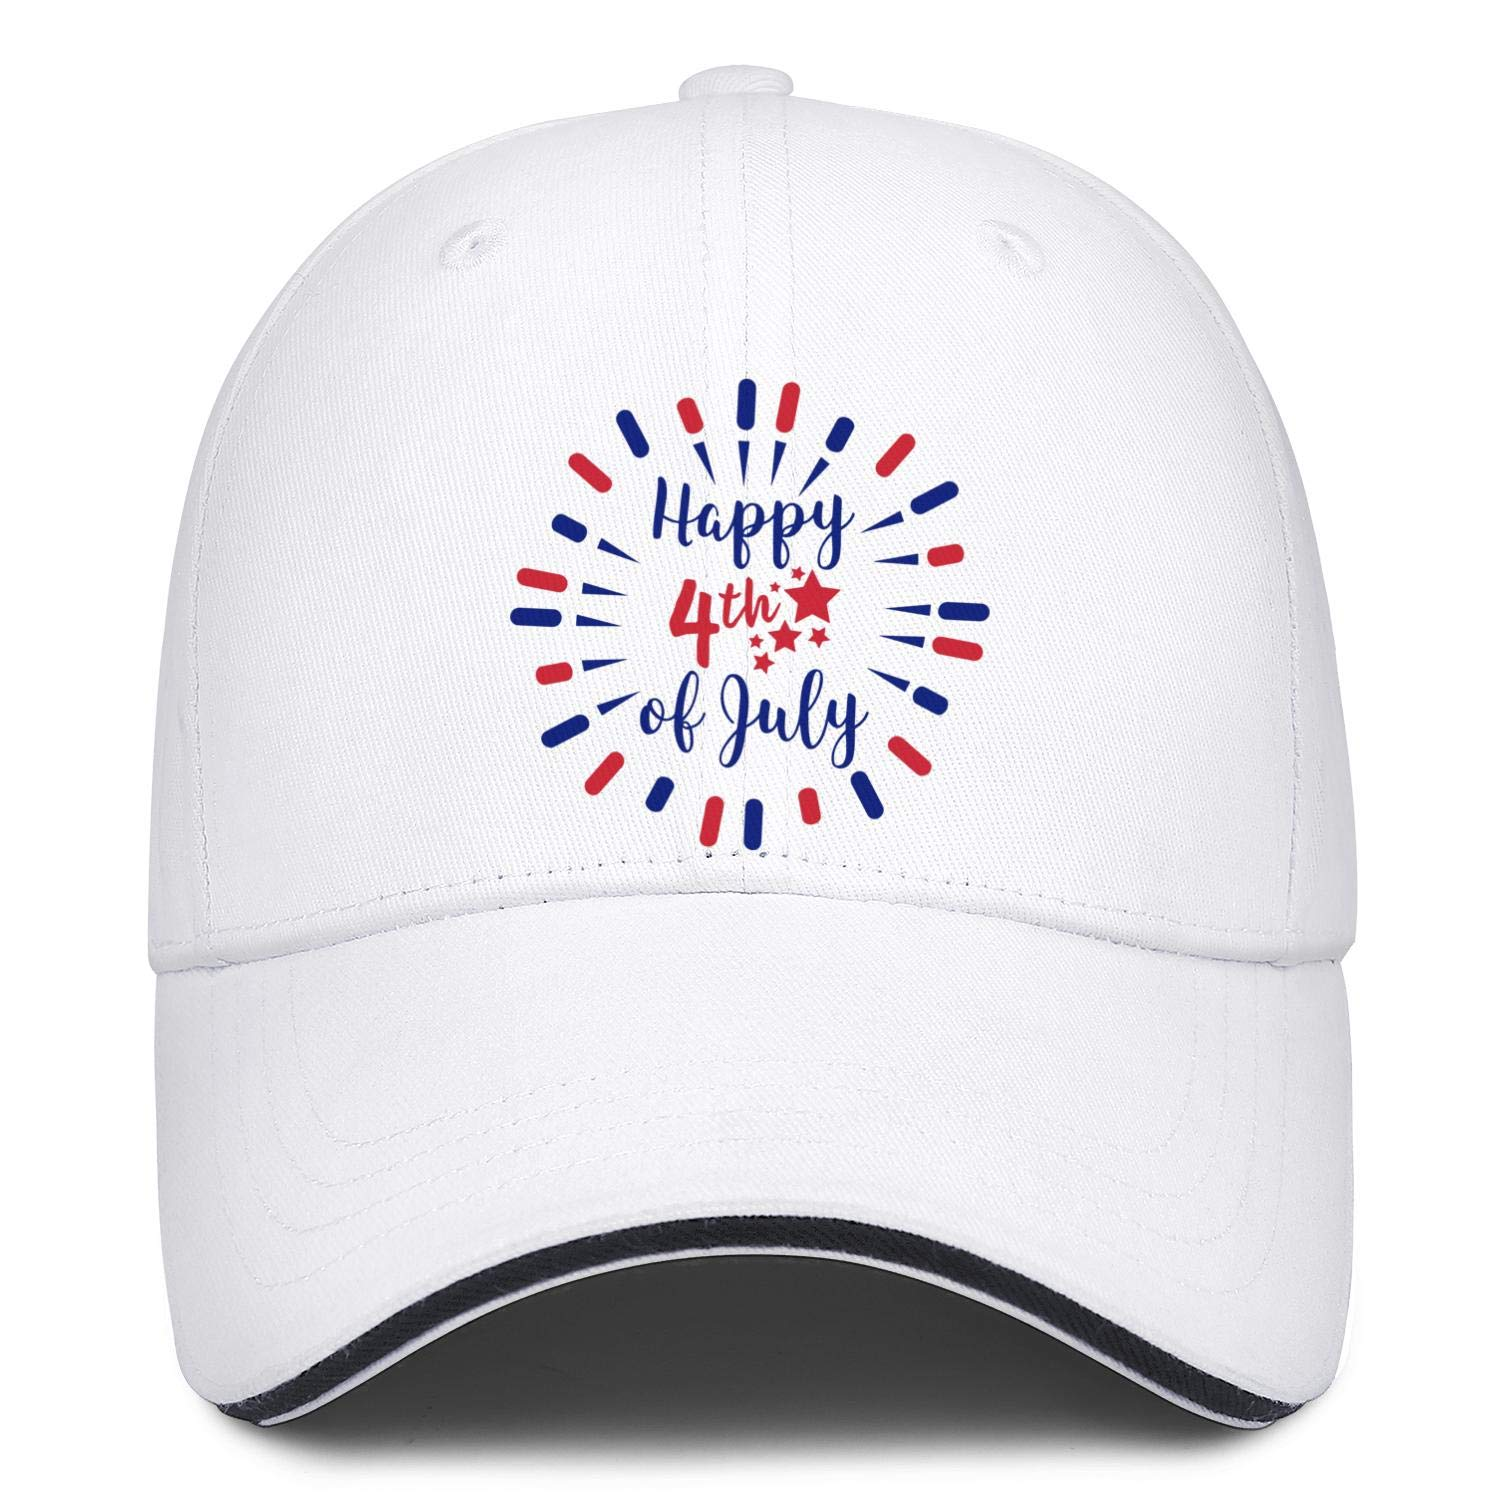 NNJA Happy 4th of July Celebration Vector Mens Flat Curved Low Profile Distressed Snapback Hat